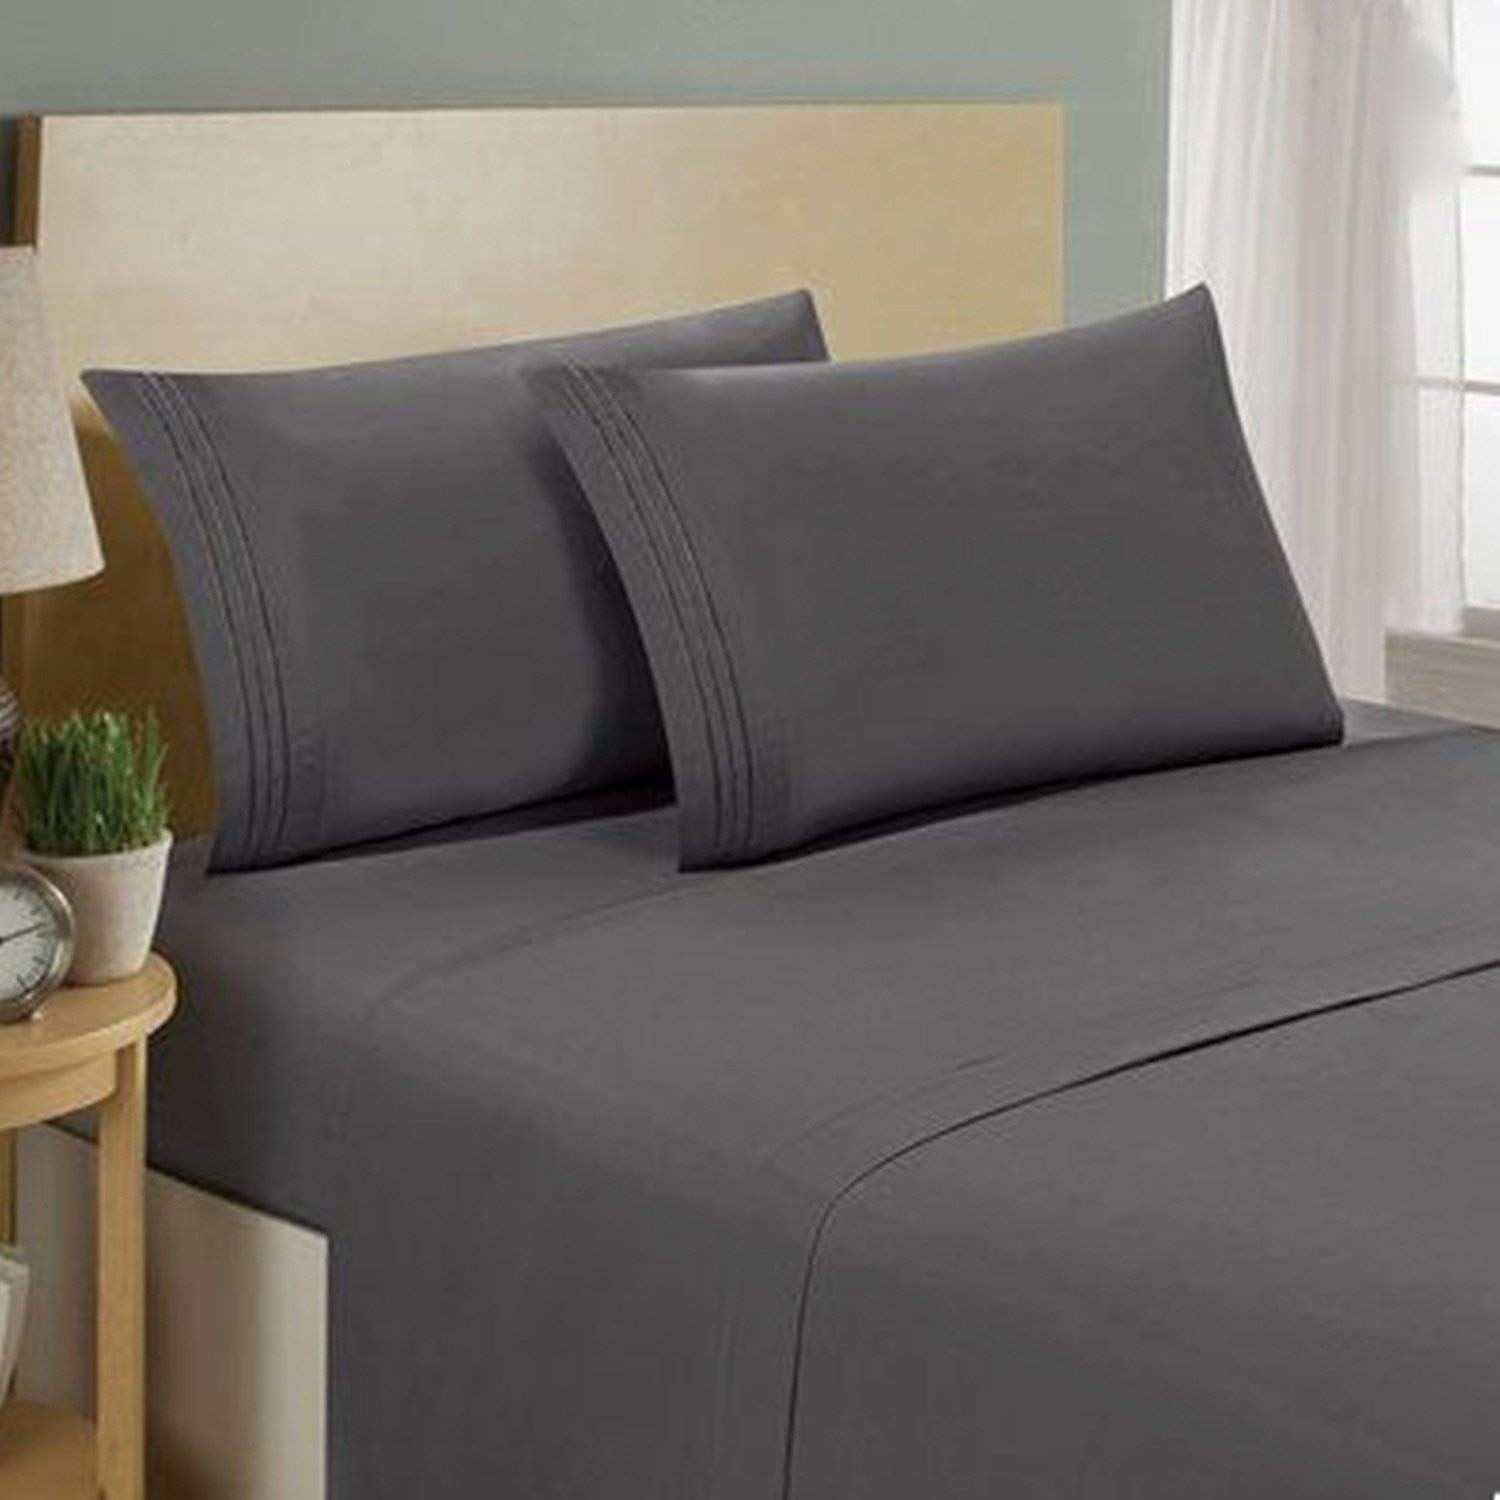 T300 100% Egyptian Cotton Sateen Fitted Sheets In Reasonable Prices- High Quality & Durable- Available In Beautiful Colors (Black, Double) ooro